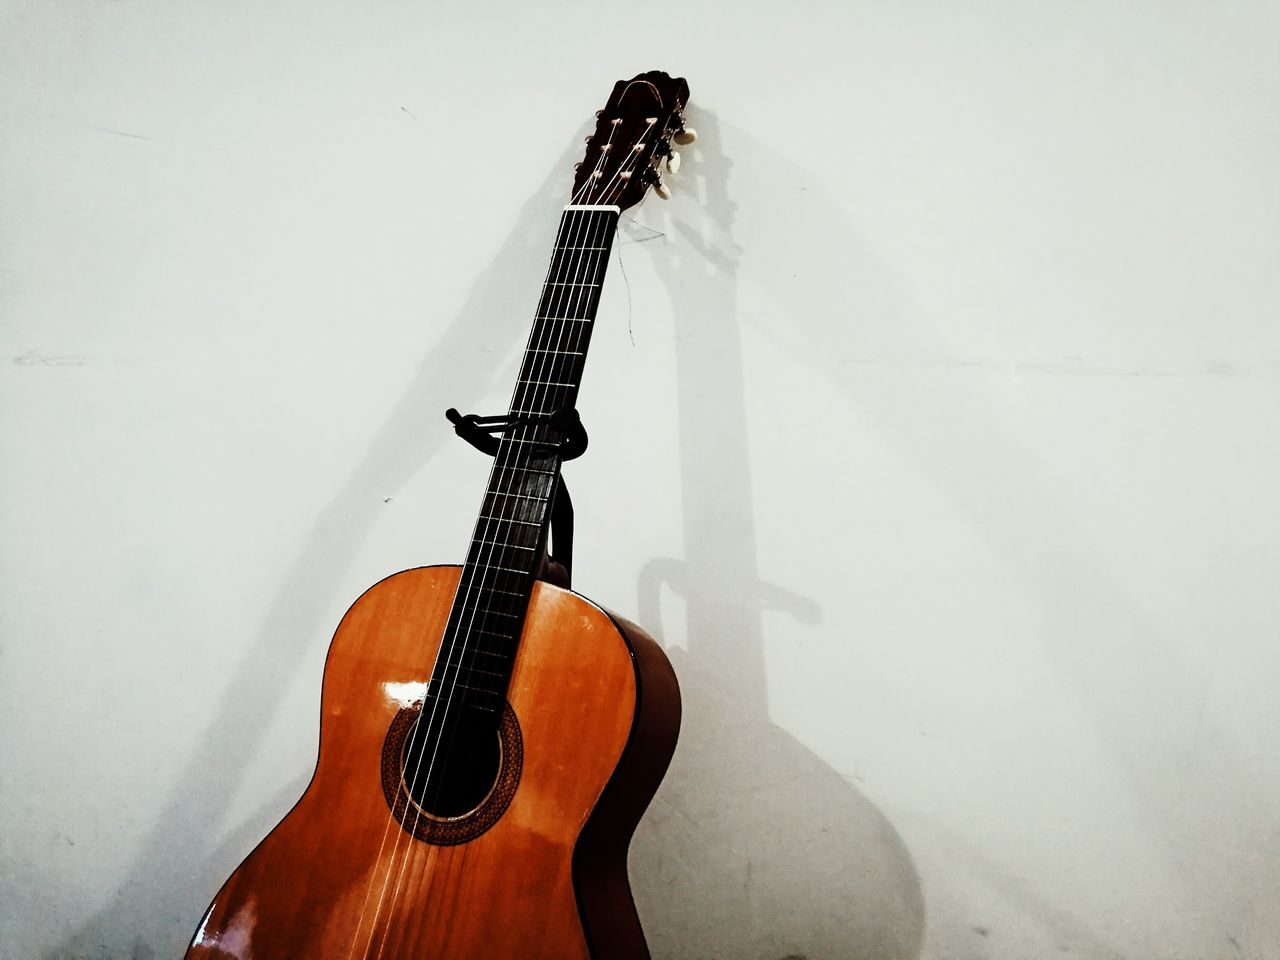 musical instrument, music, indoors, musical instrument string, no people, guitar, close-up, day